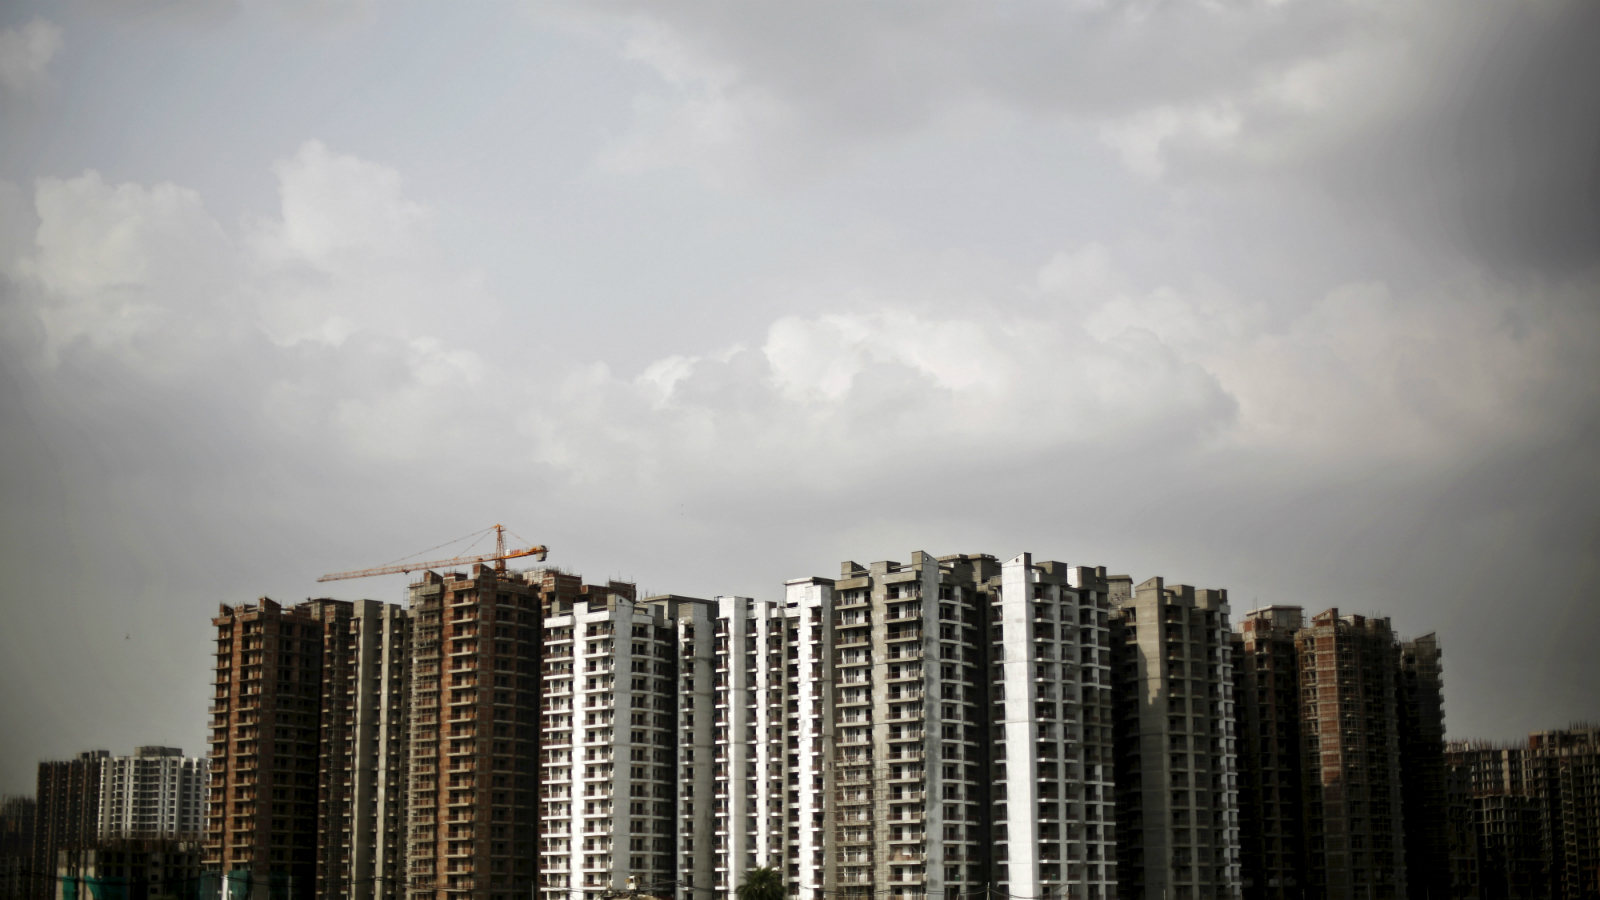 A view shows a residential complex that is under construction in Noida on the outskirts of New Delhi, India, August 20, 2015.